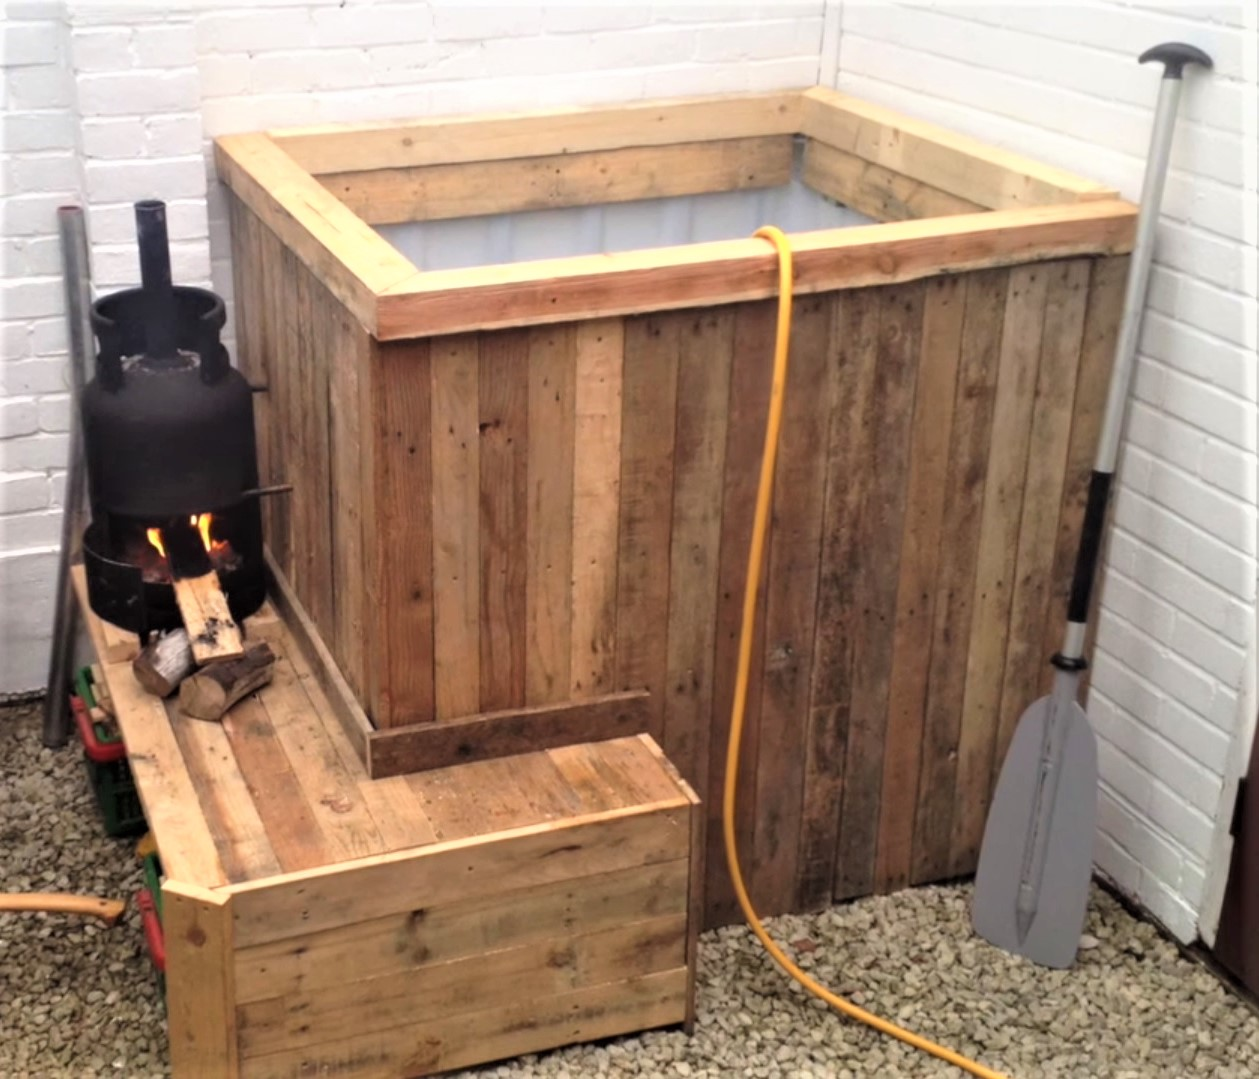 IBC Tote Hot Tubs - DIY Personal-Sized Fun or Pure Fancy?